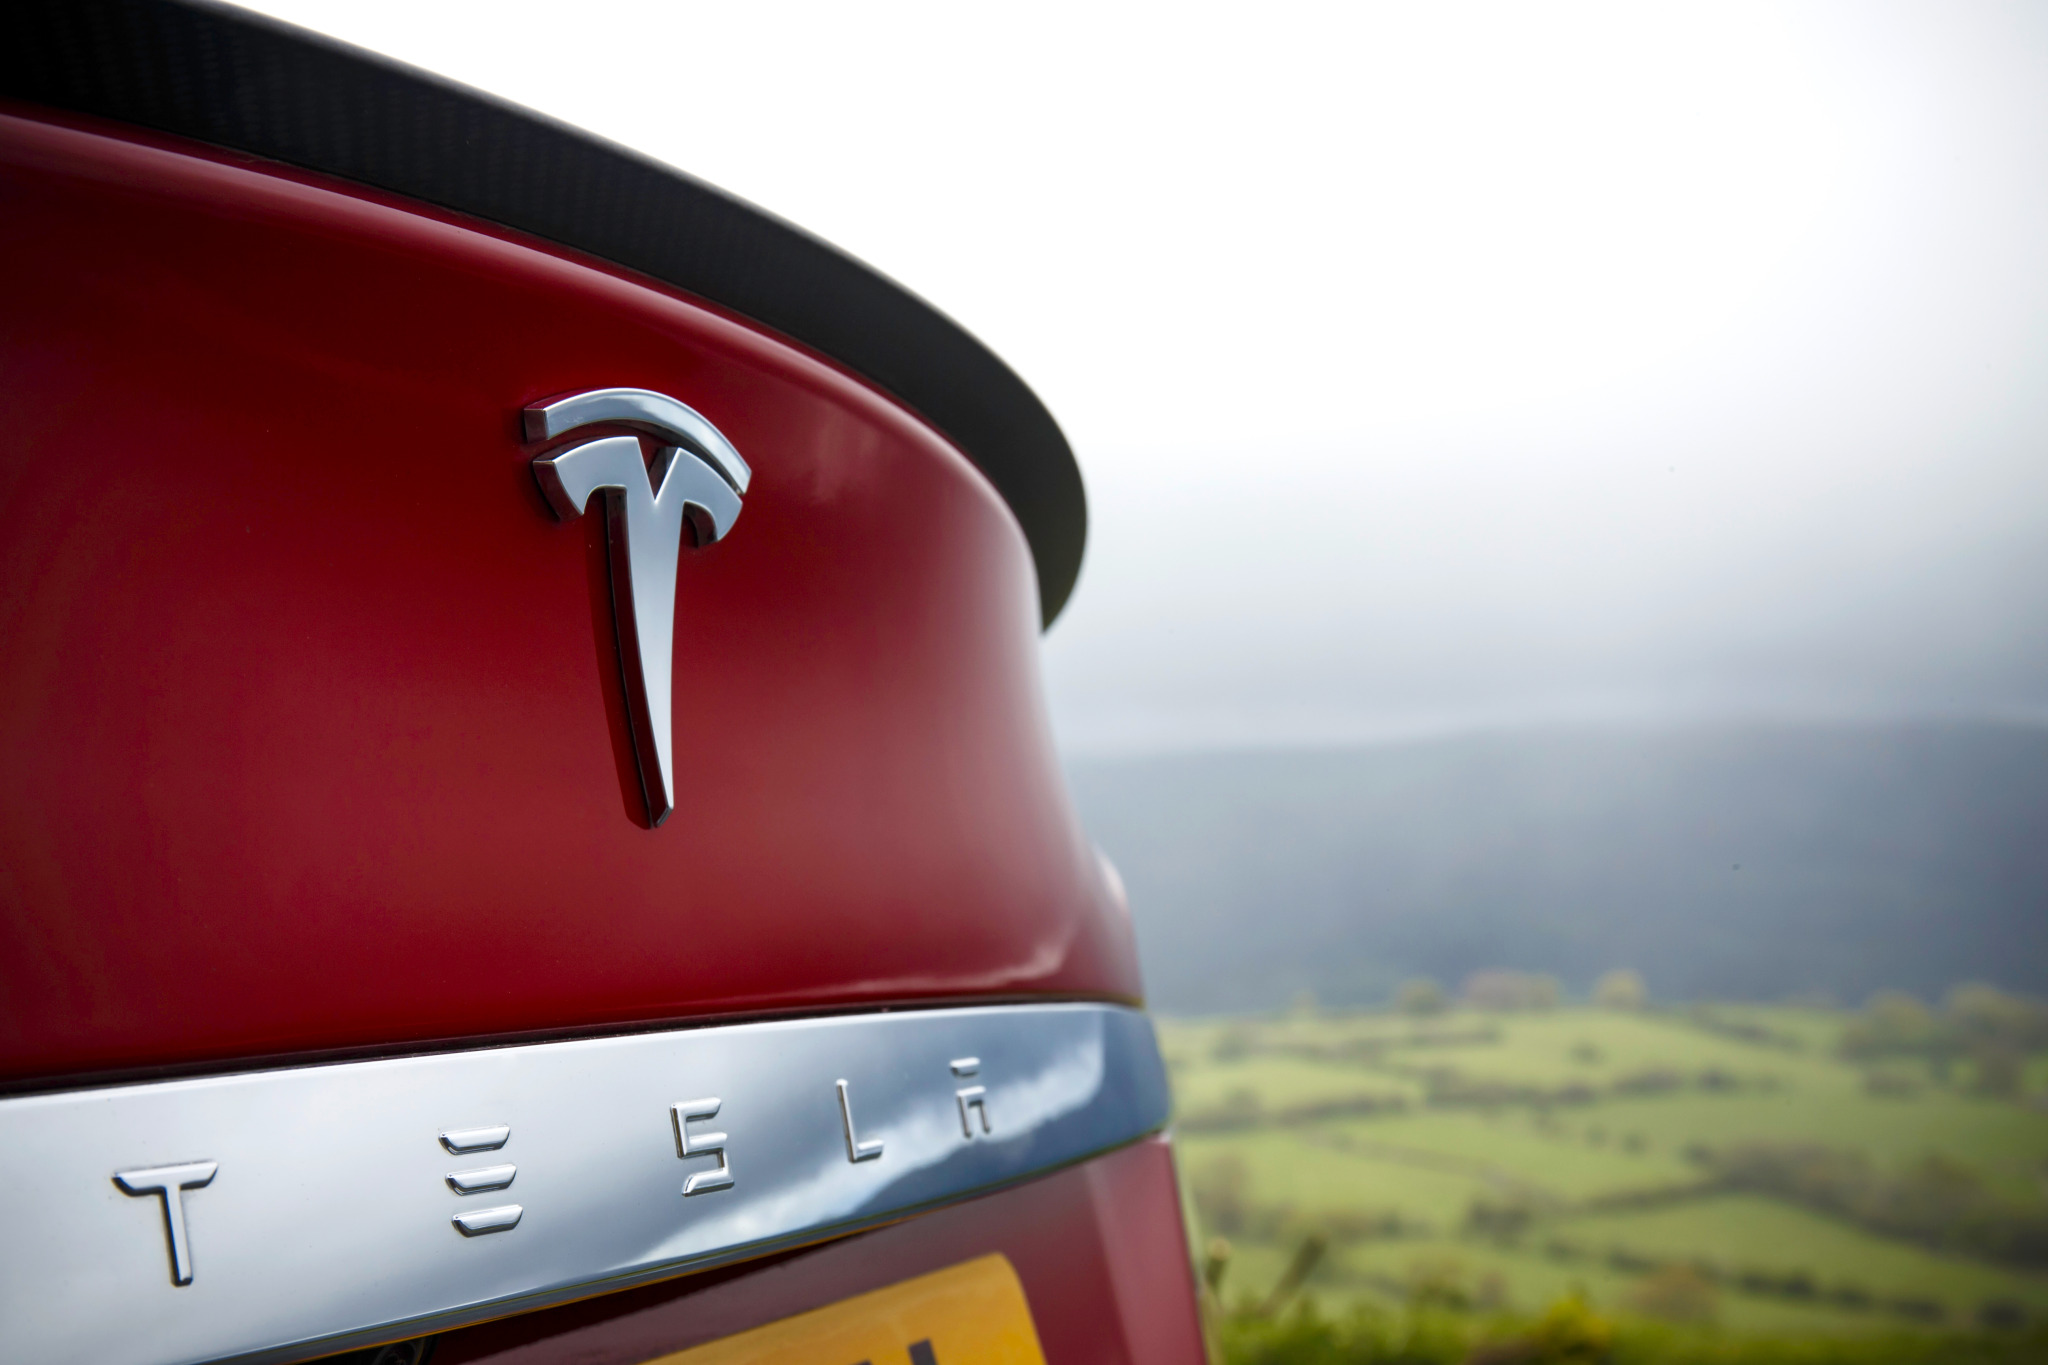 Tesla's worst trading day since 2014